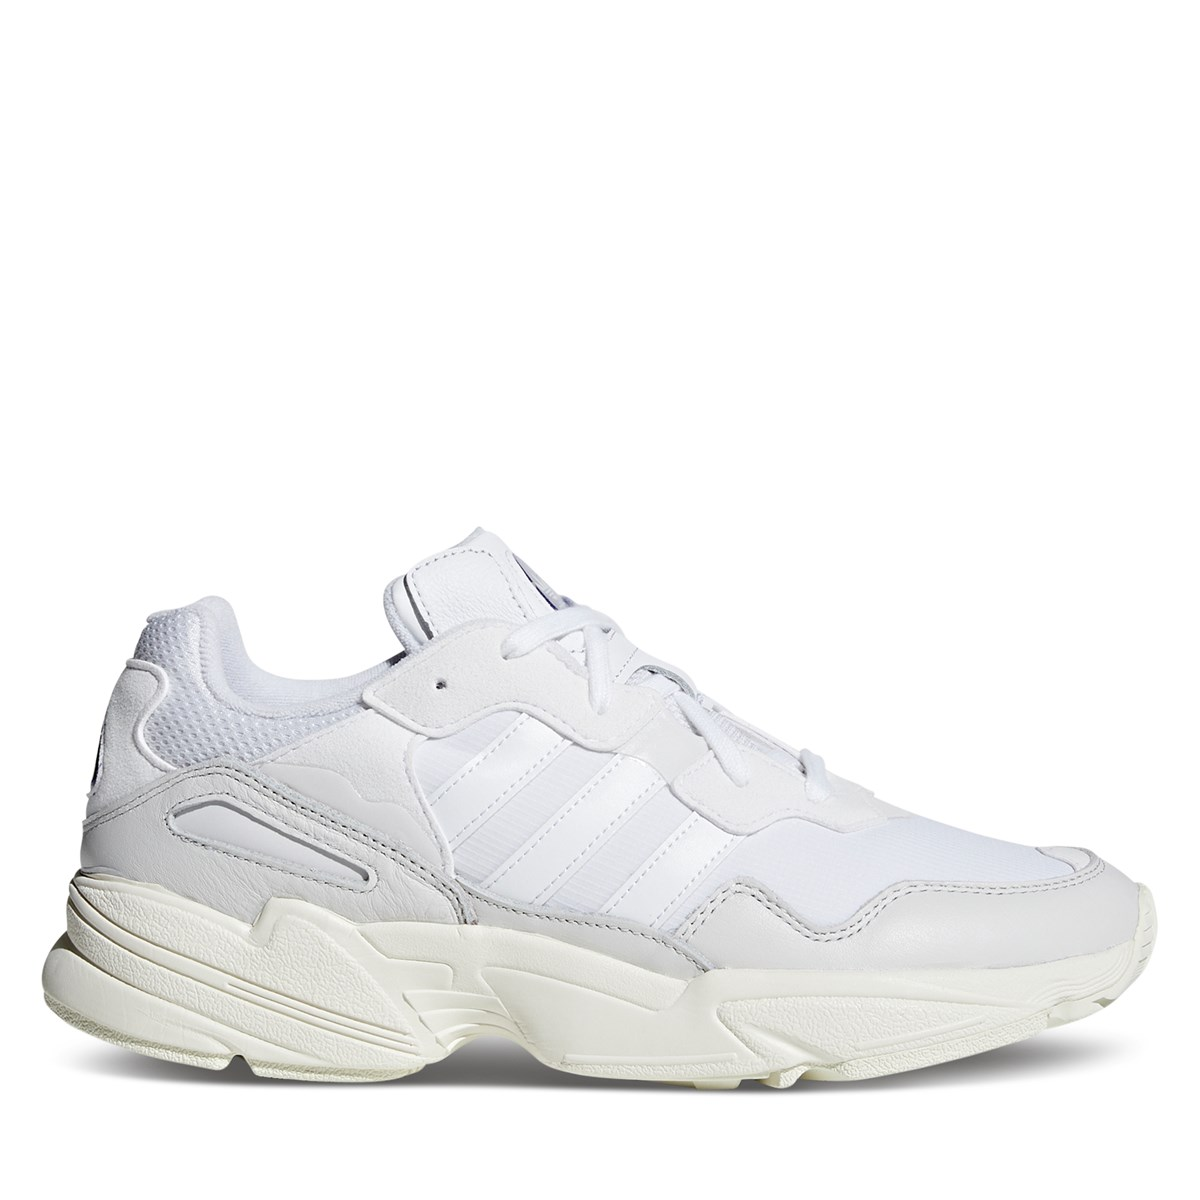 Men's Yung-96 Sneaker's in White